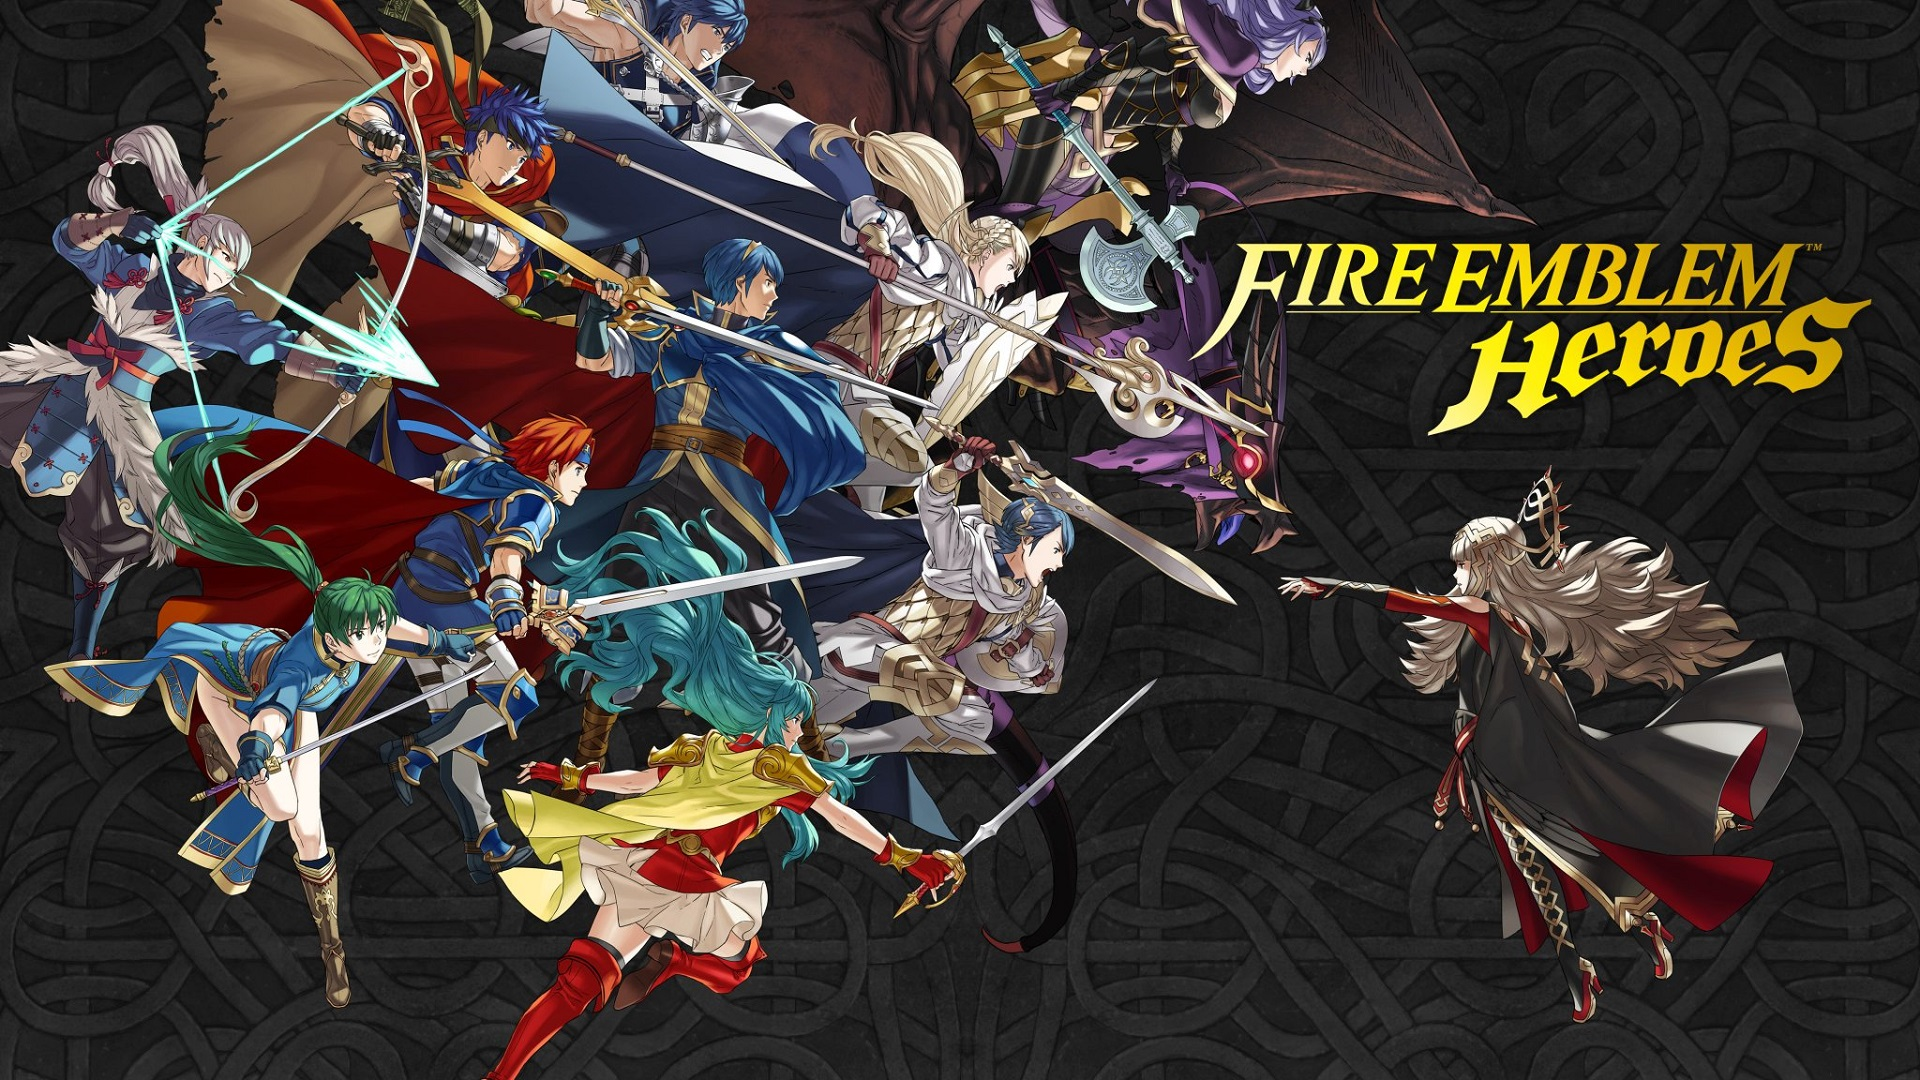 Modojo | Fire Emblem Heroes Players To Receive 10,000 Hero Feathers